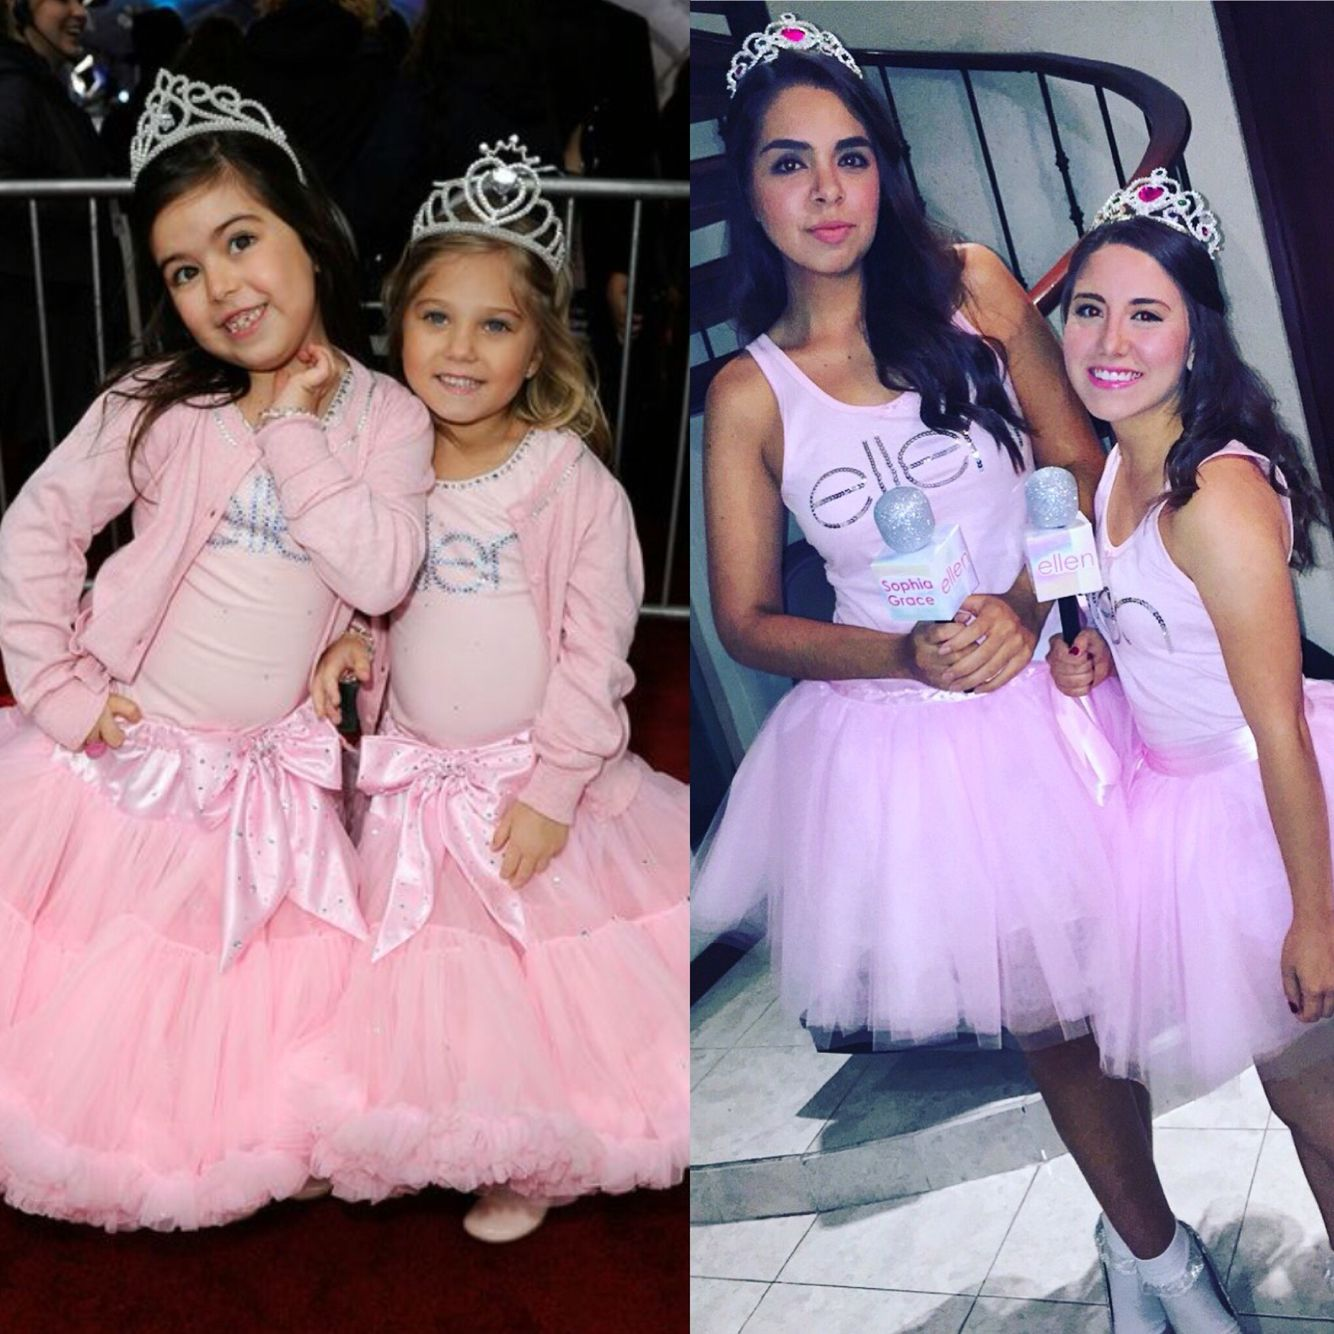 sophia grace and rosie halloween costume sophiagraceandrosie ideal for short and tall best - Best Halloween Costumes For Tall Guys